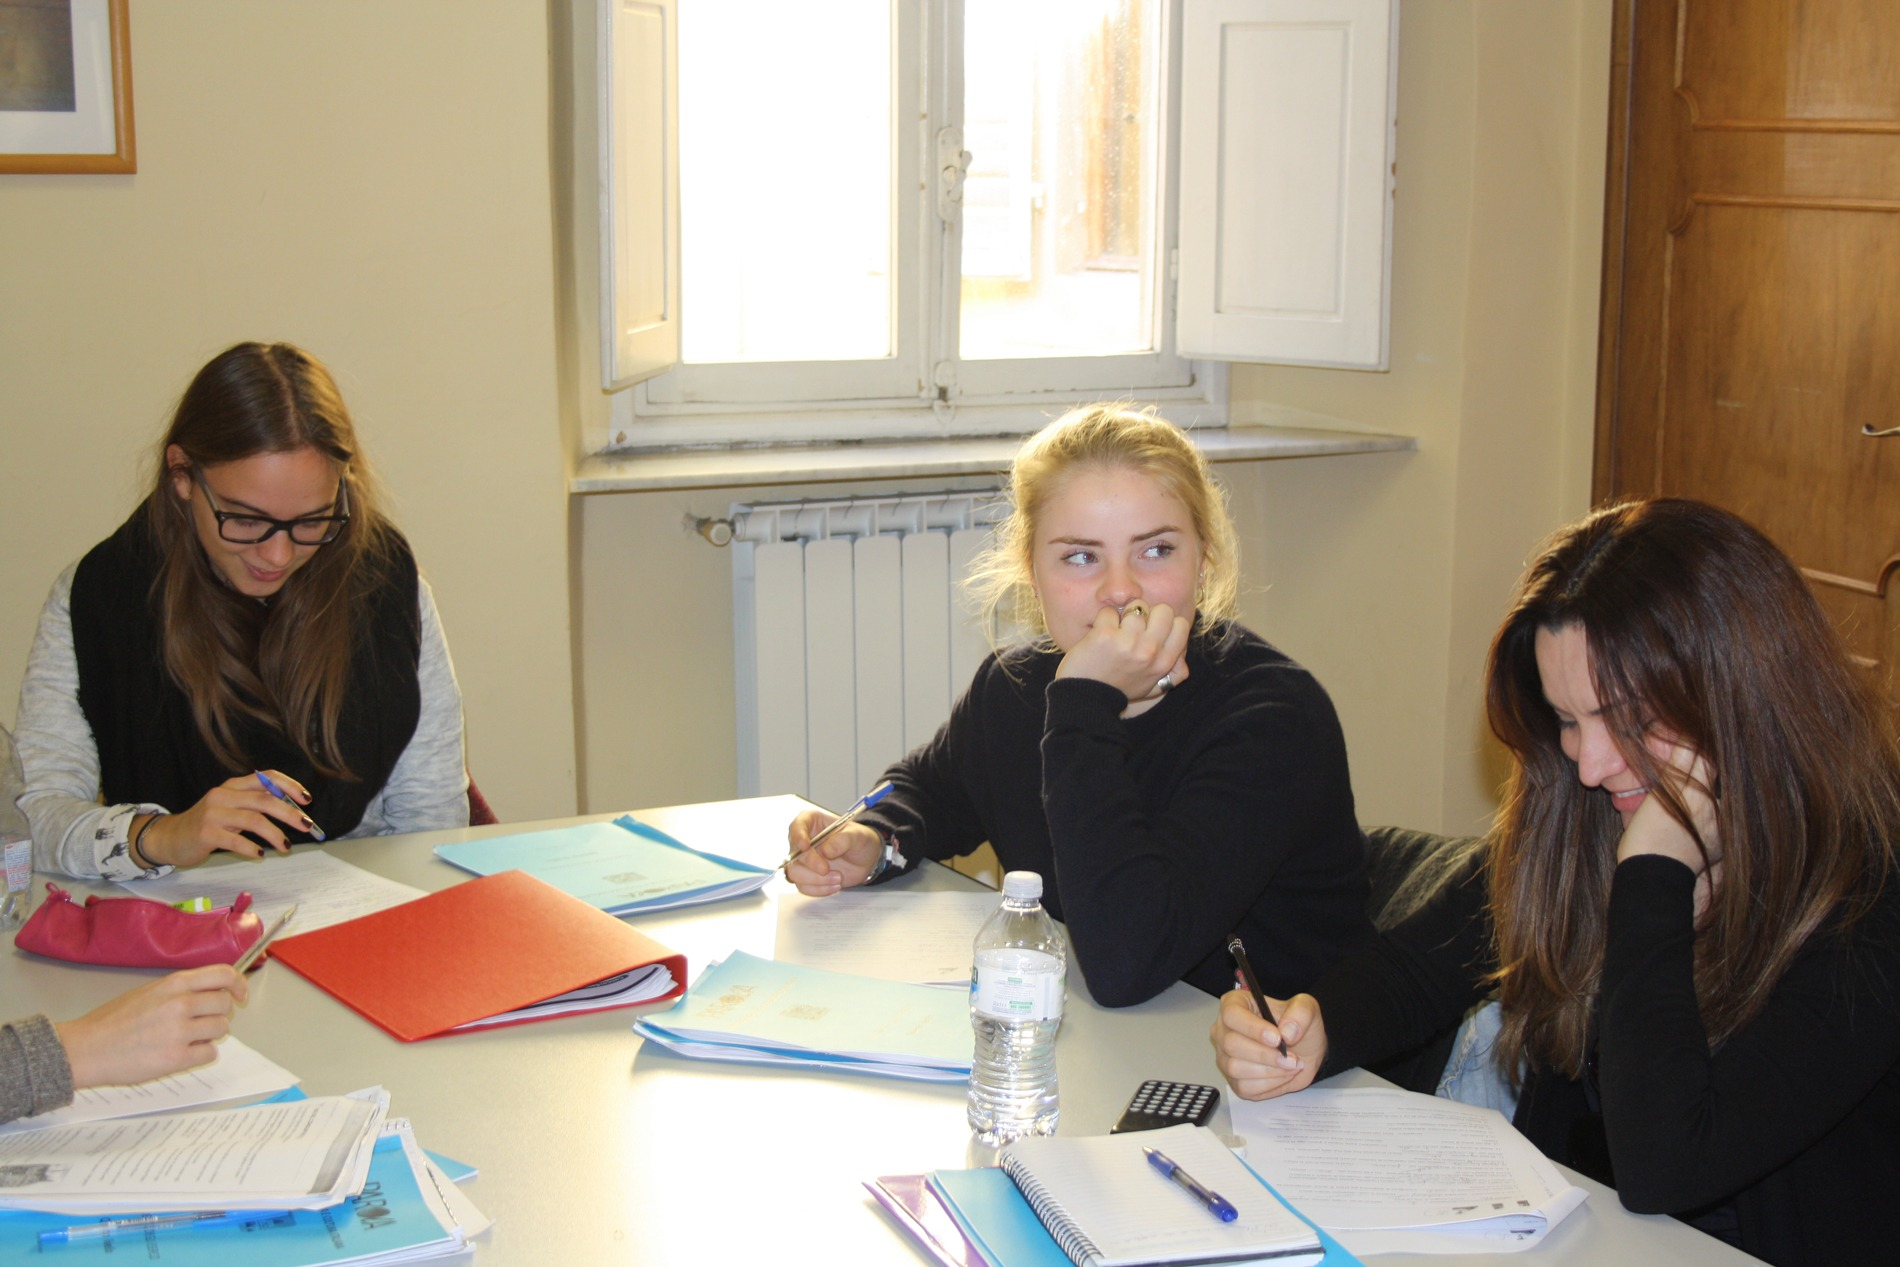 Au Pairs learning Italian in Florence at Parola school